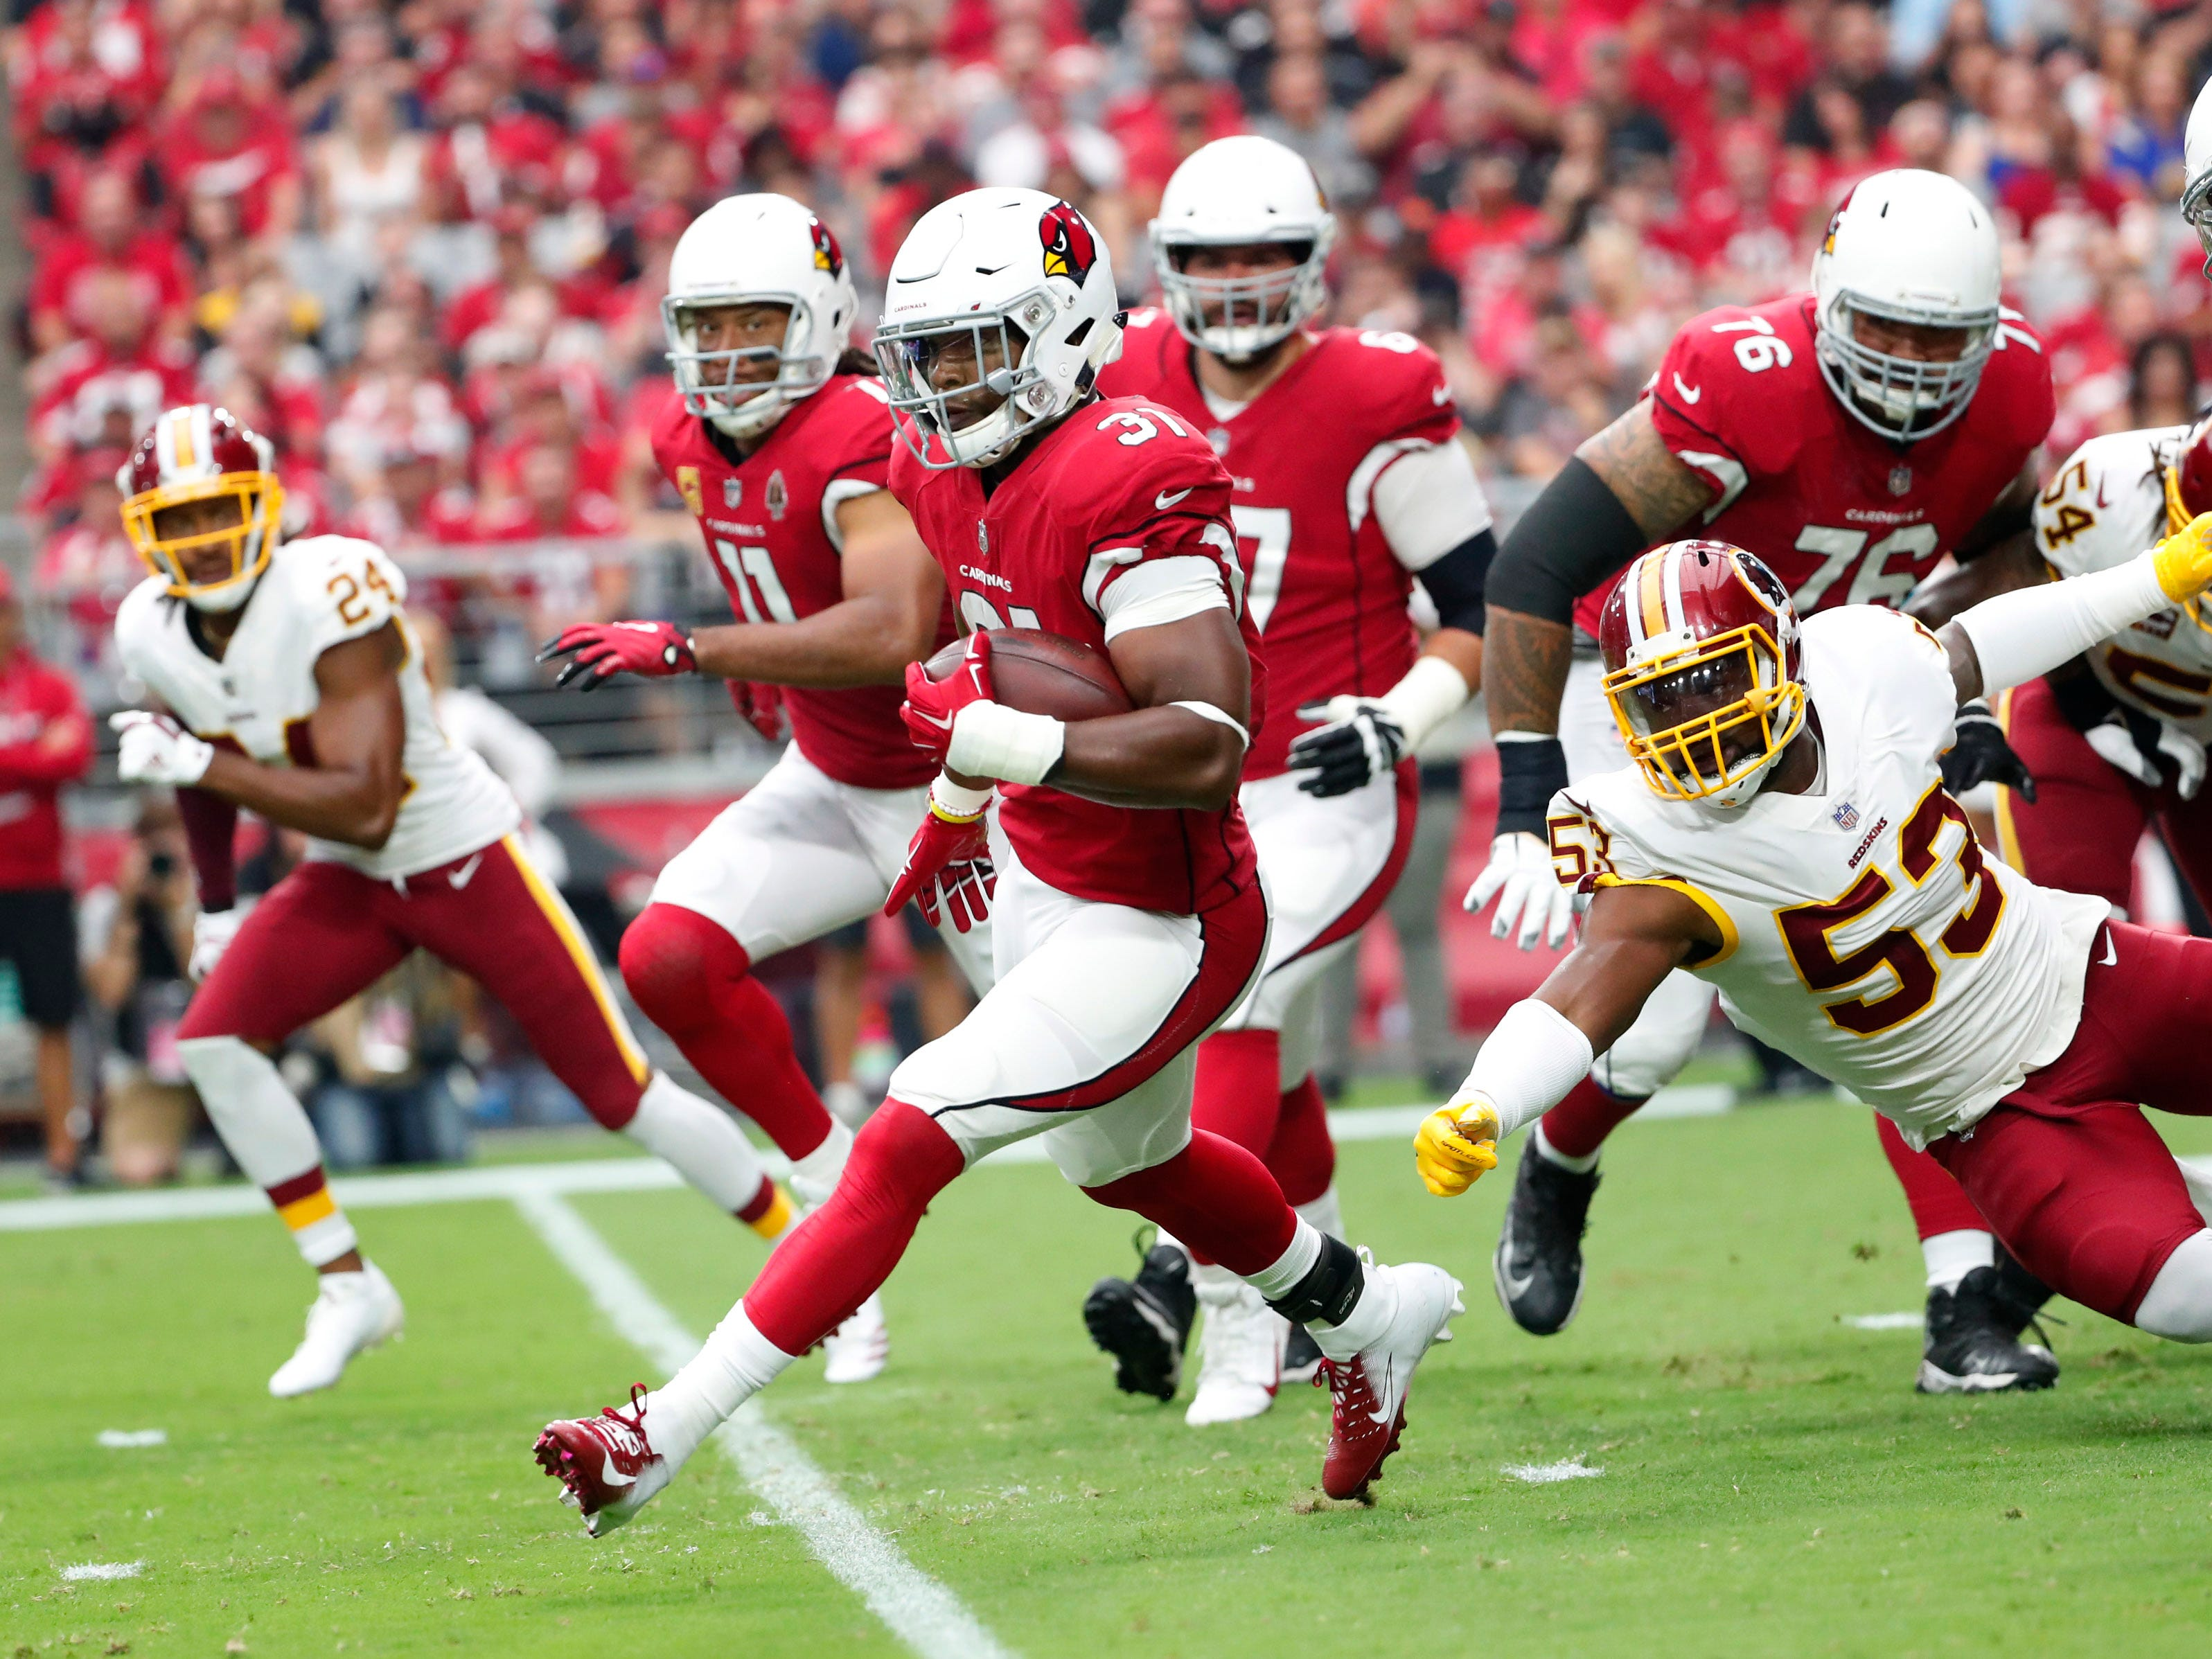 Arizona Cardinals running back David Johnson (31) runs through a hole against the Washington Redskins during the first quarter at State Farm Stadium in Glendale, Ariz. September 9. 2018.